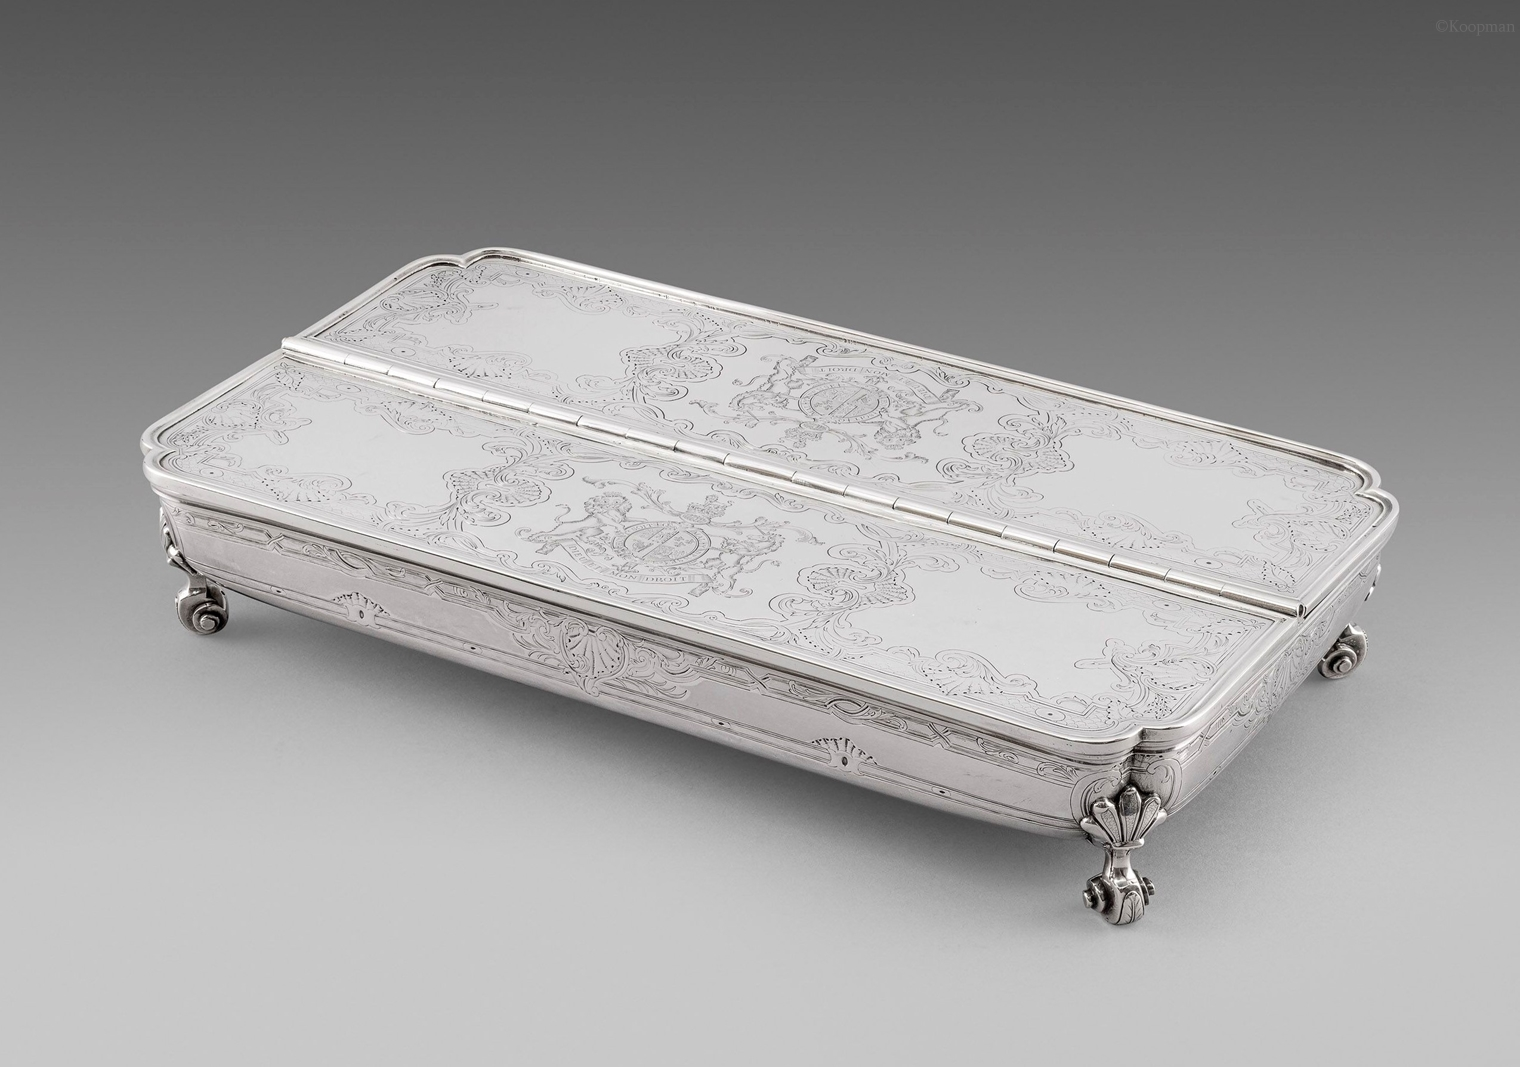 A George III Treasury Inkstand